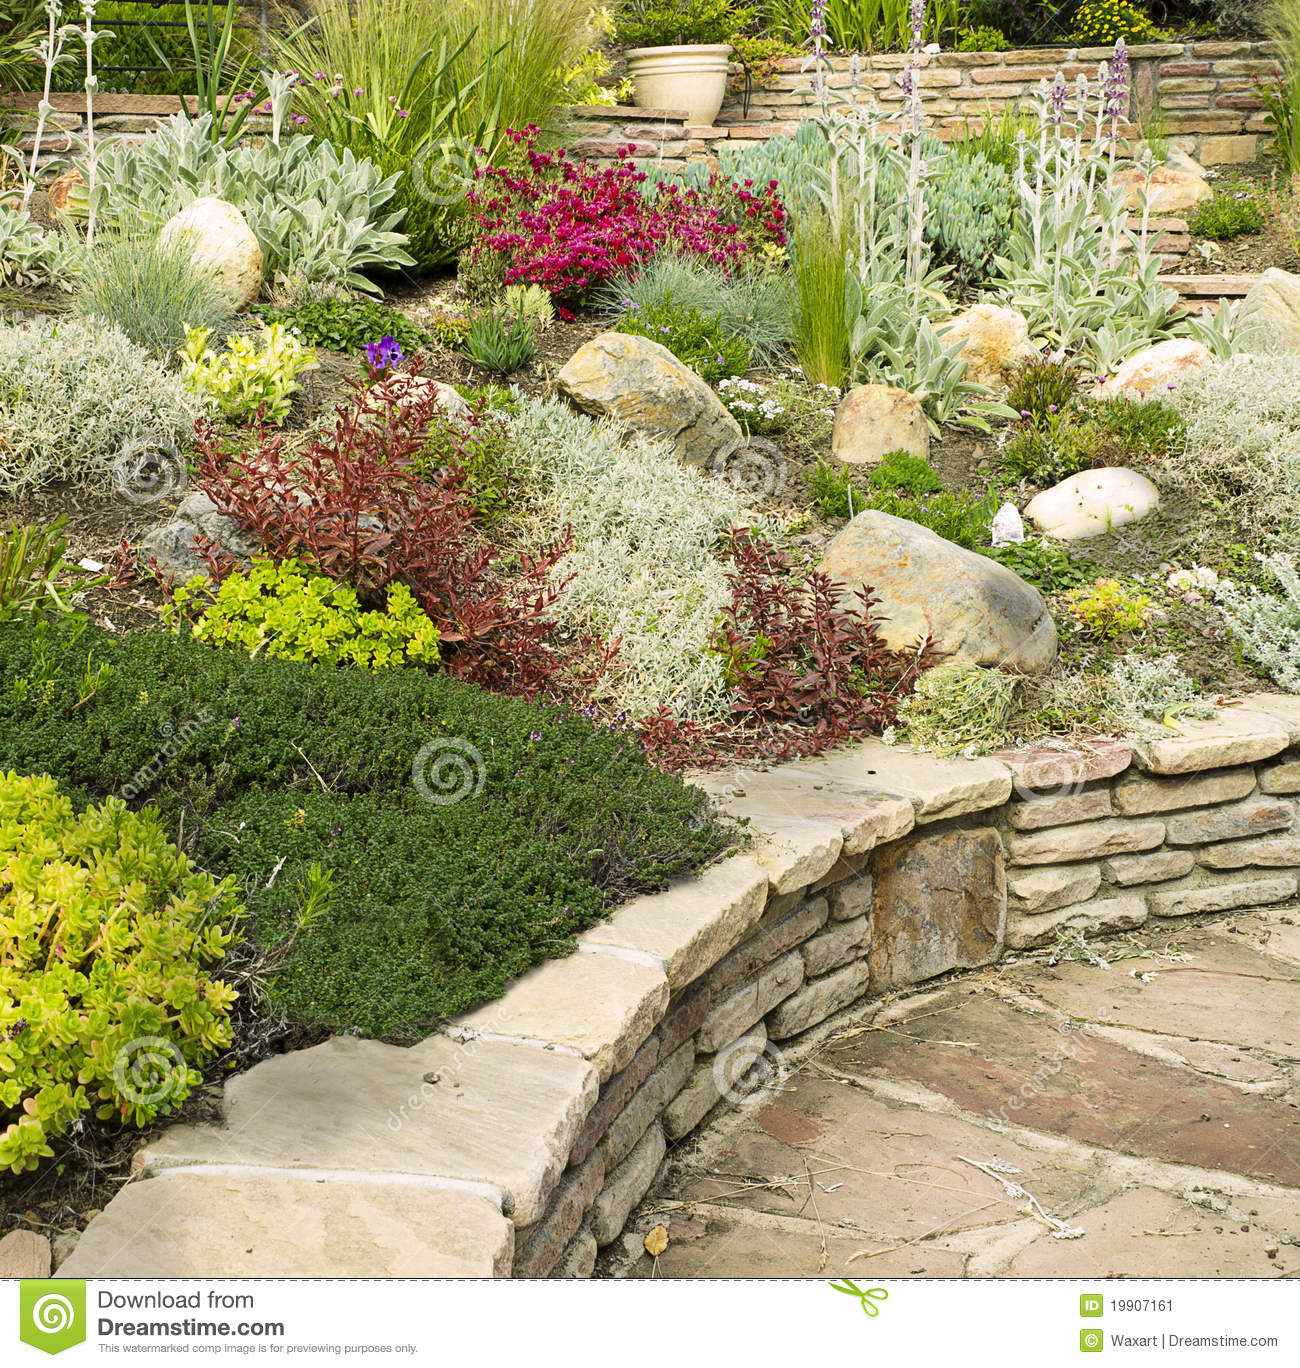 Colorful Rock Garden With Stone Wall Stock Image - Image: 19907161